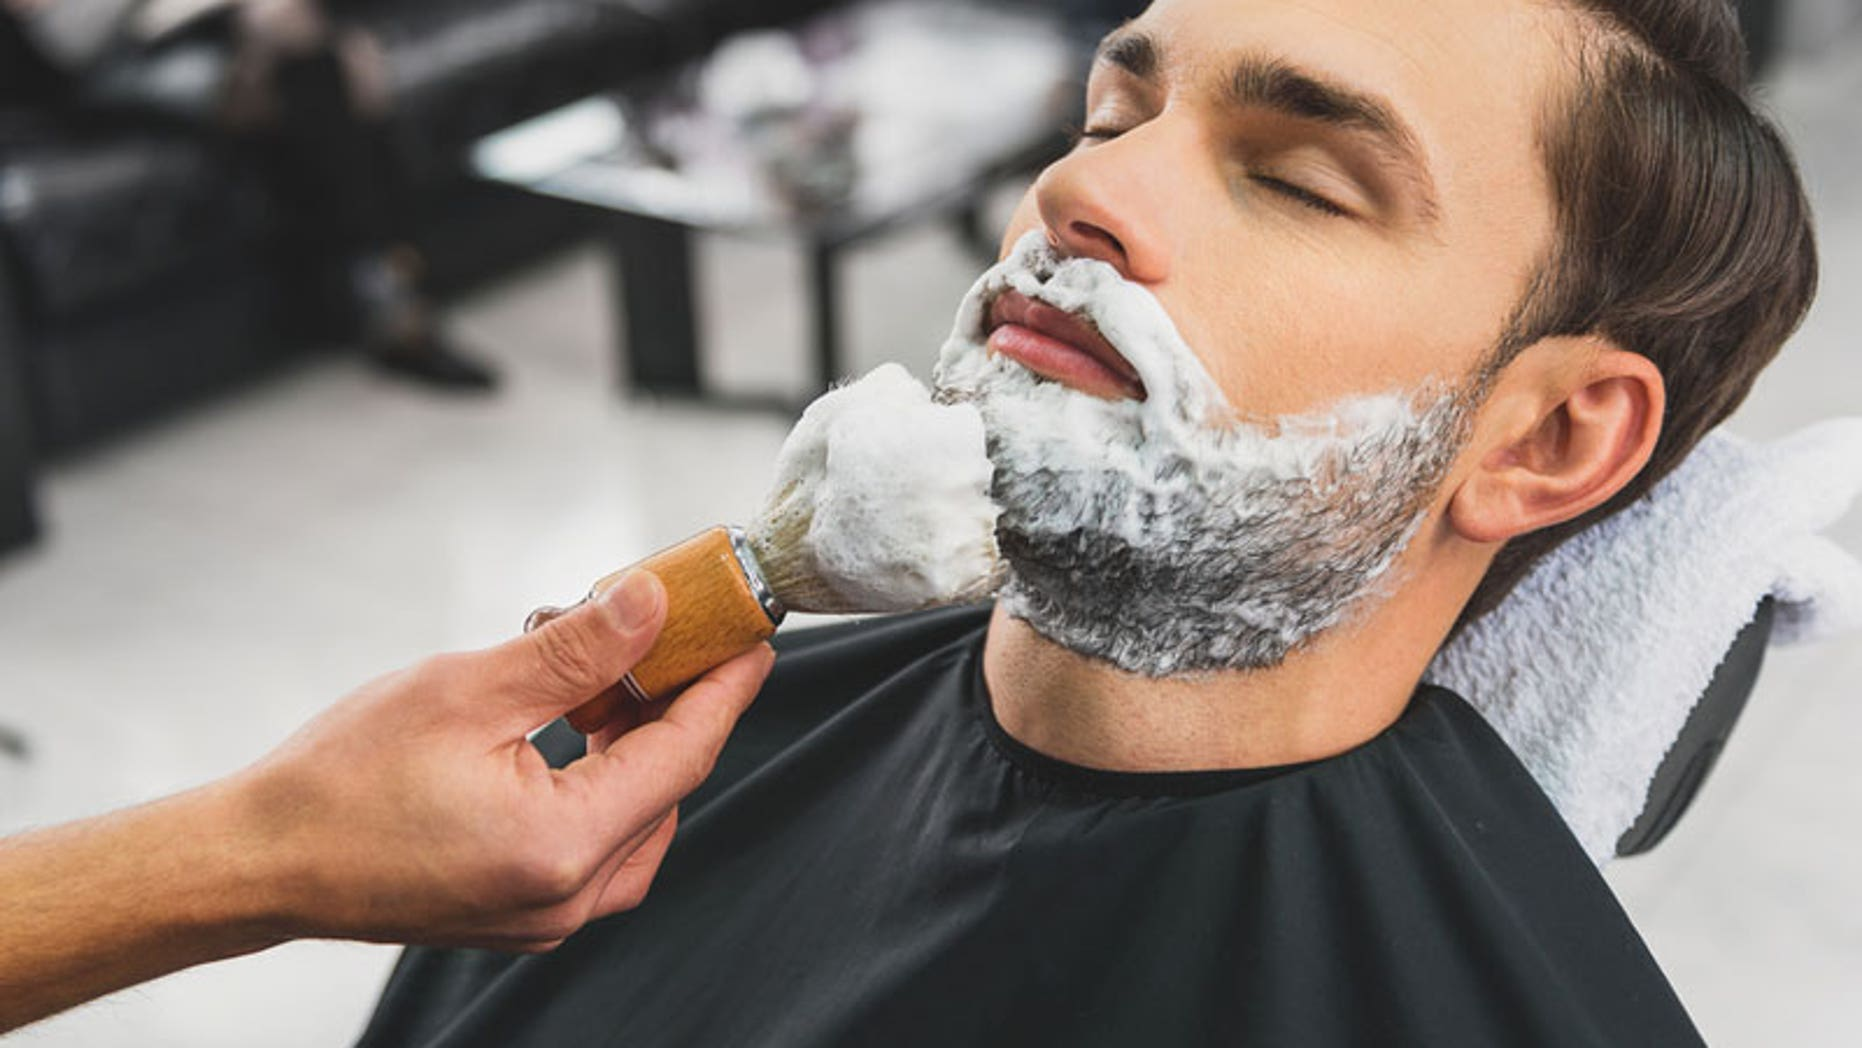 Men's shaving brushes made from animal hair were linked with cases of anthrax around the time of World War I, according to a new report.